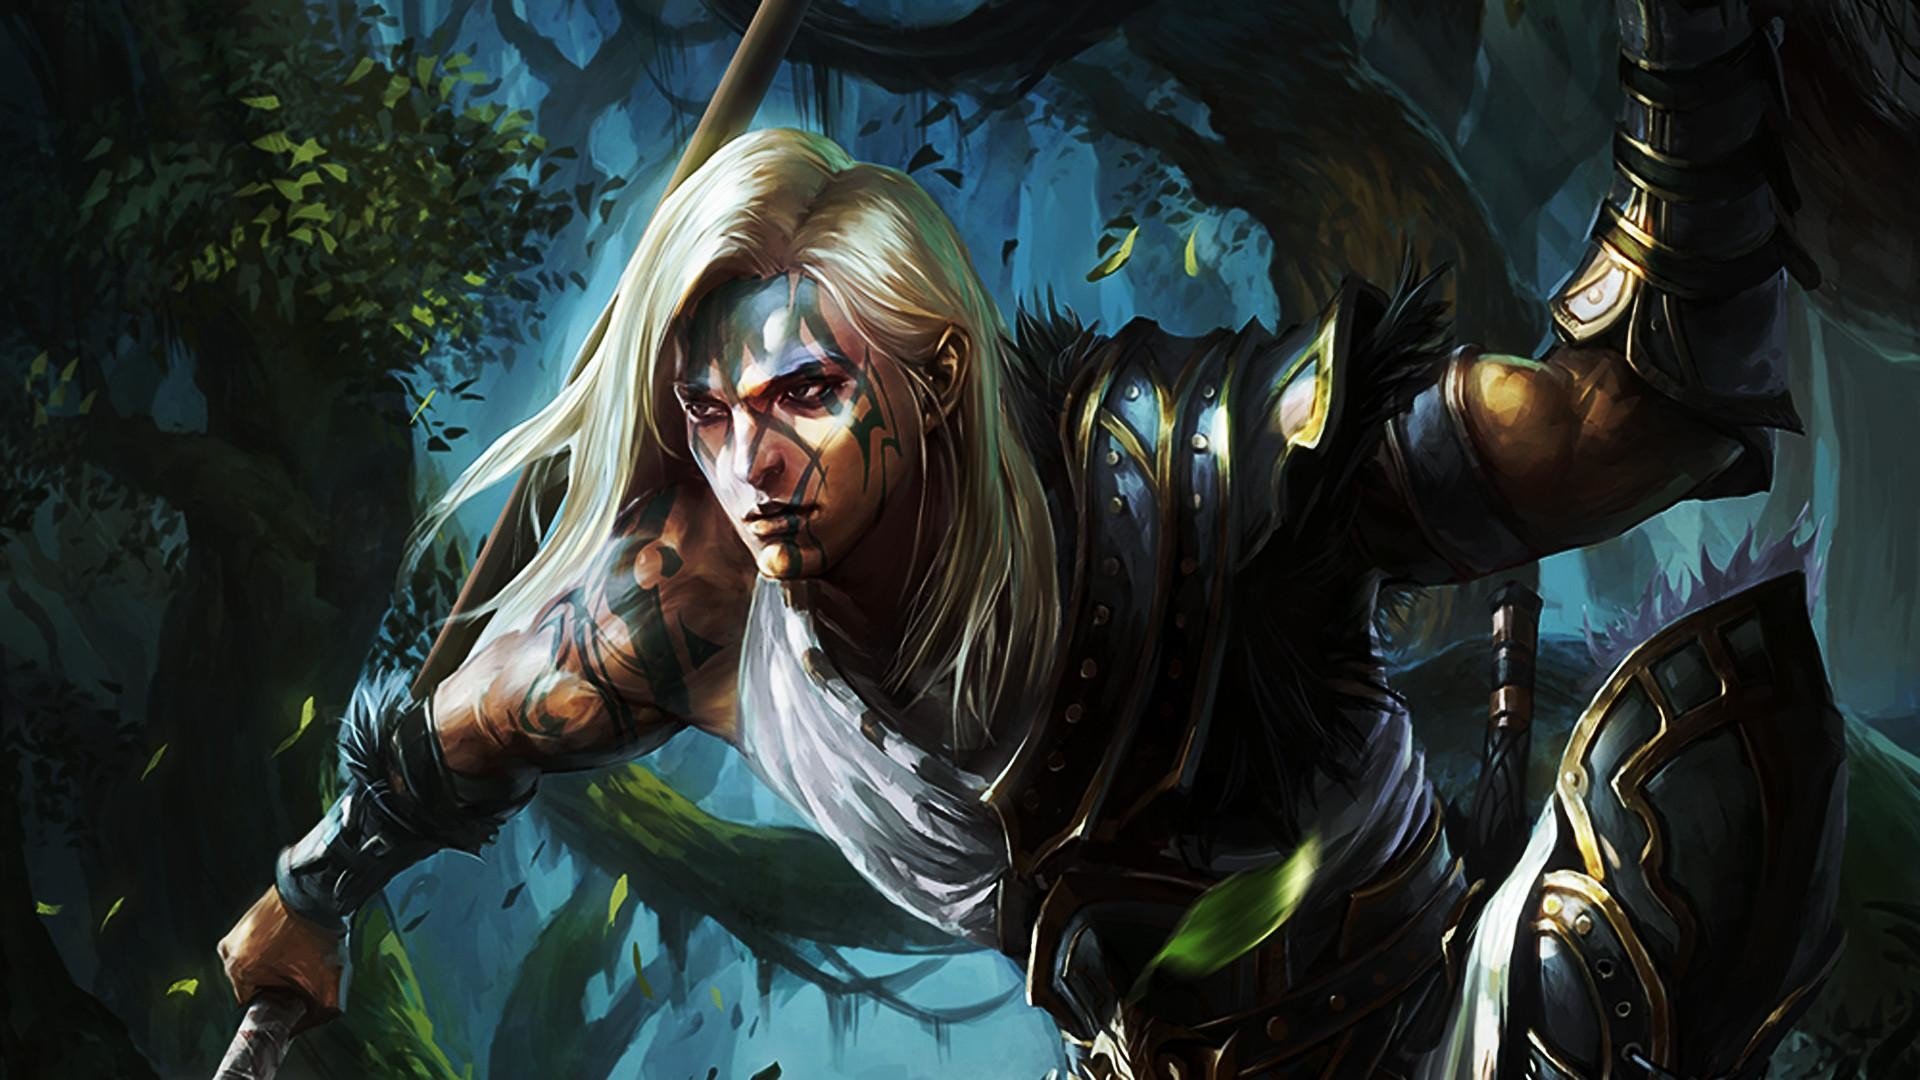 Related Suggestions for Anime Male Dark Elf